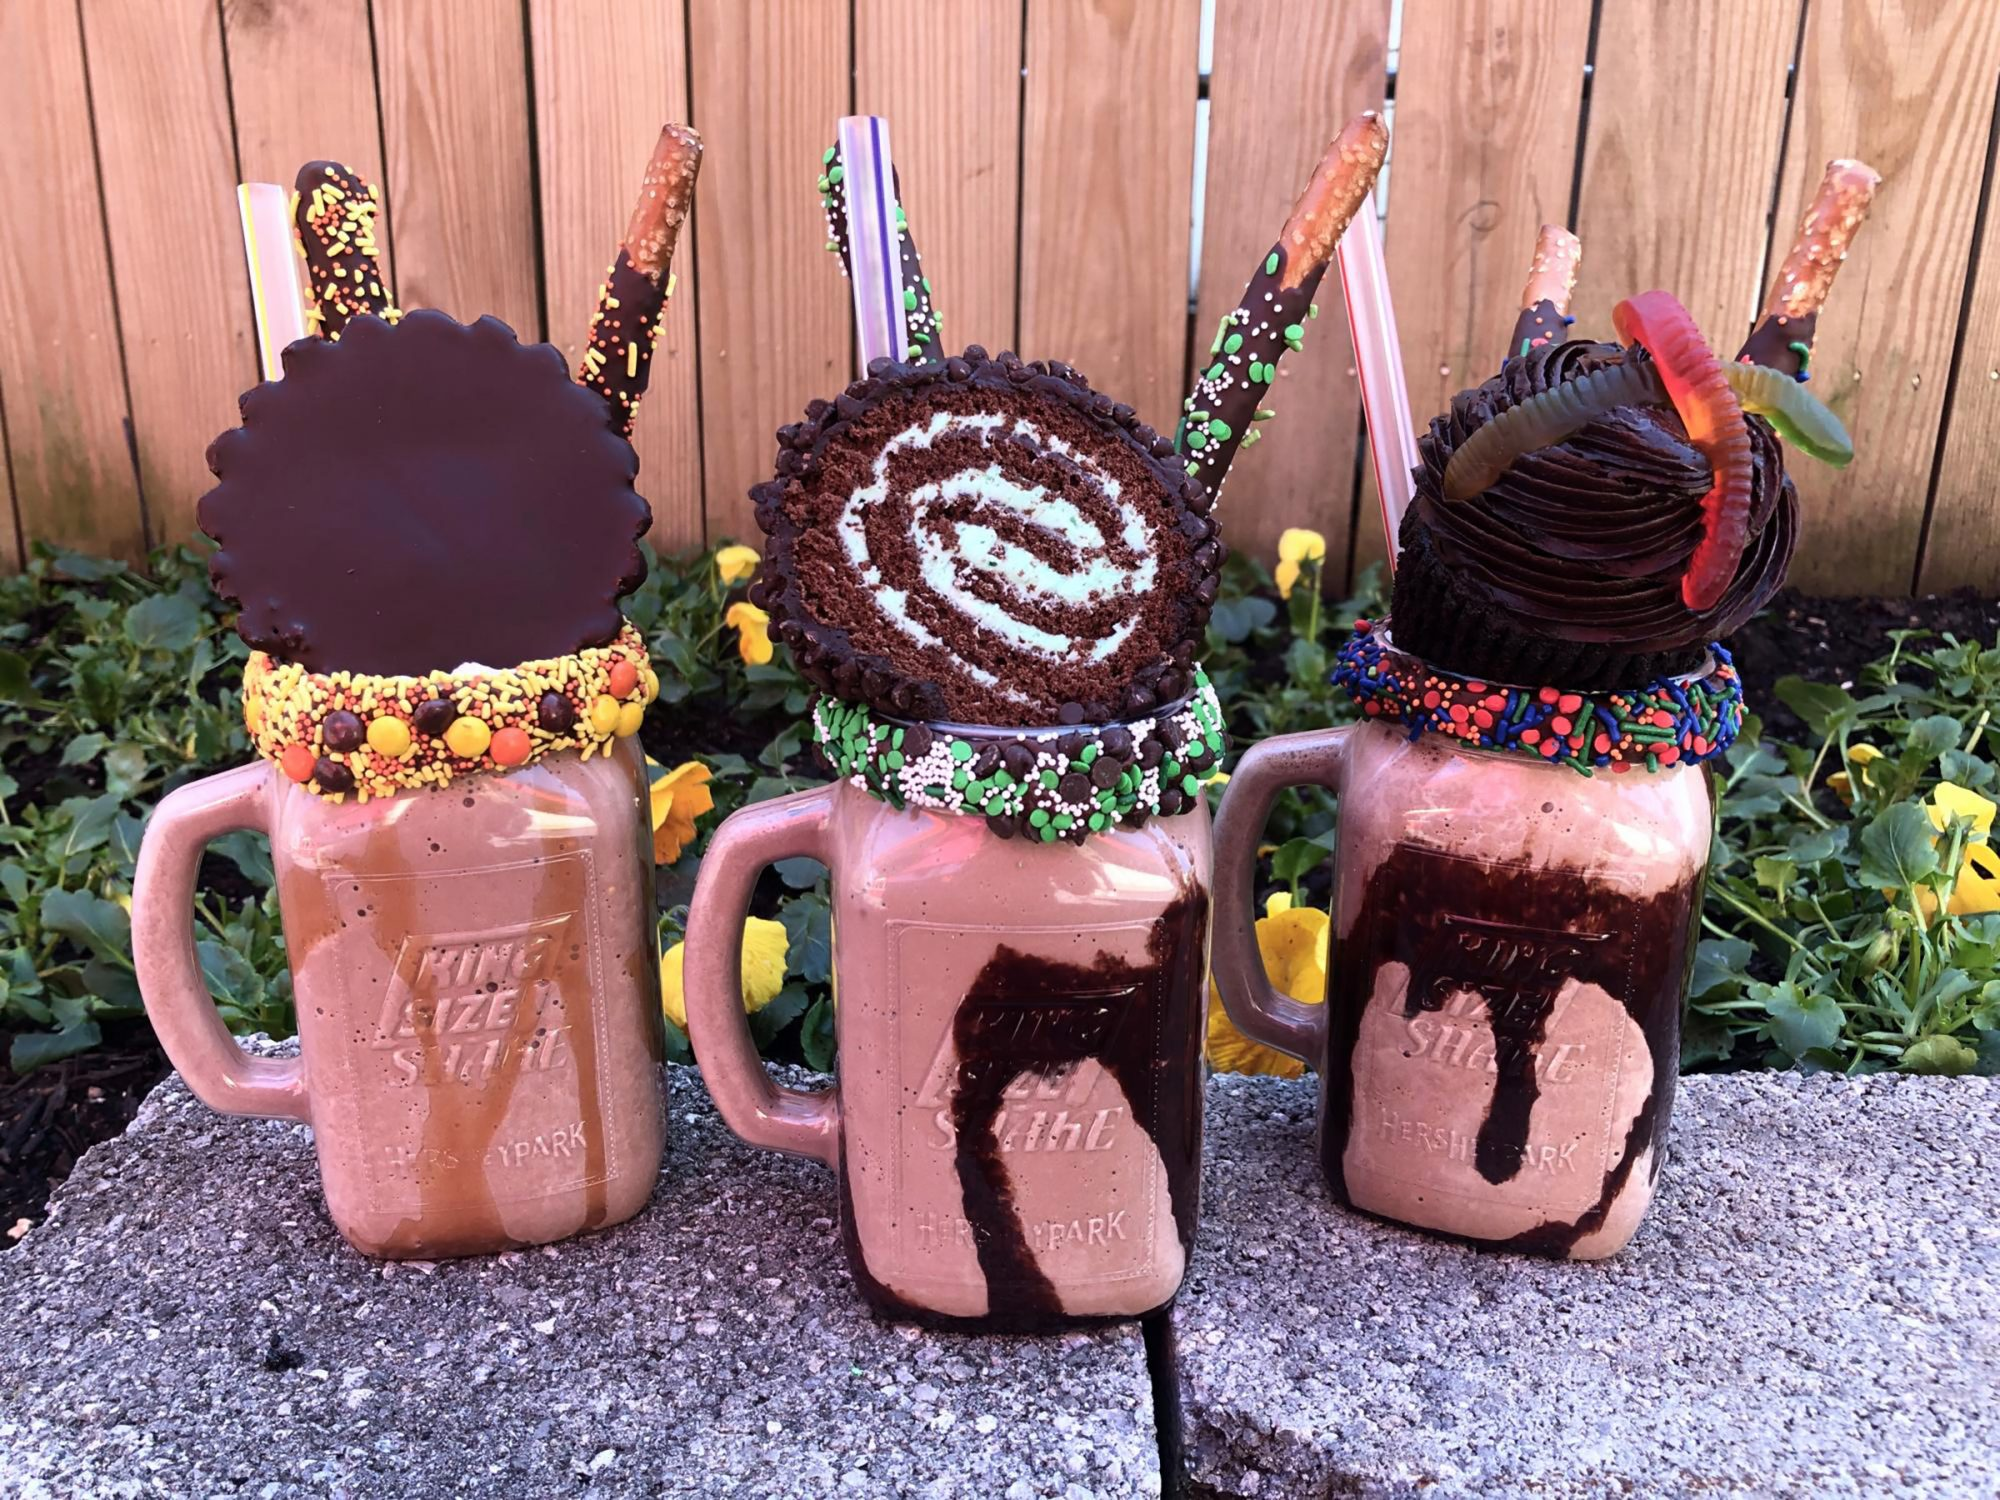 King Size Shakes from Hershey Park